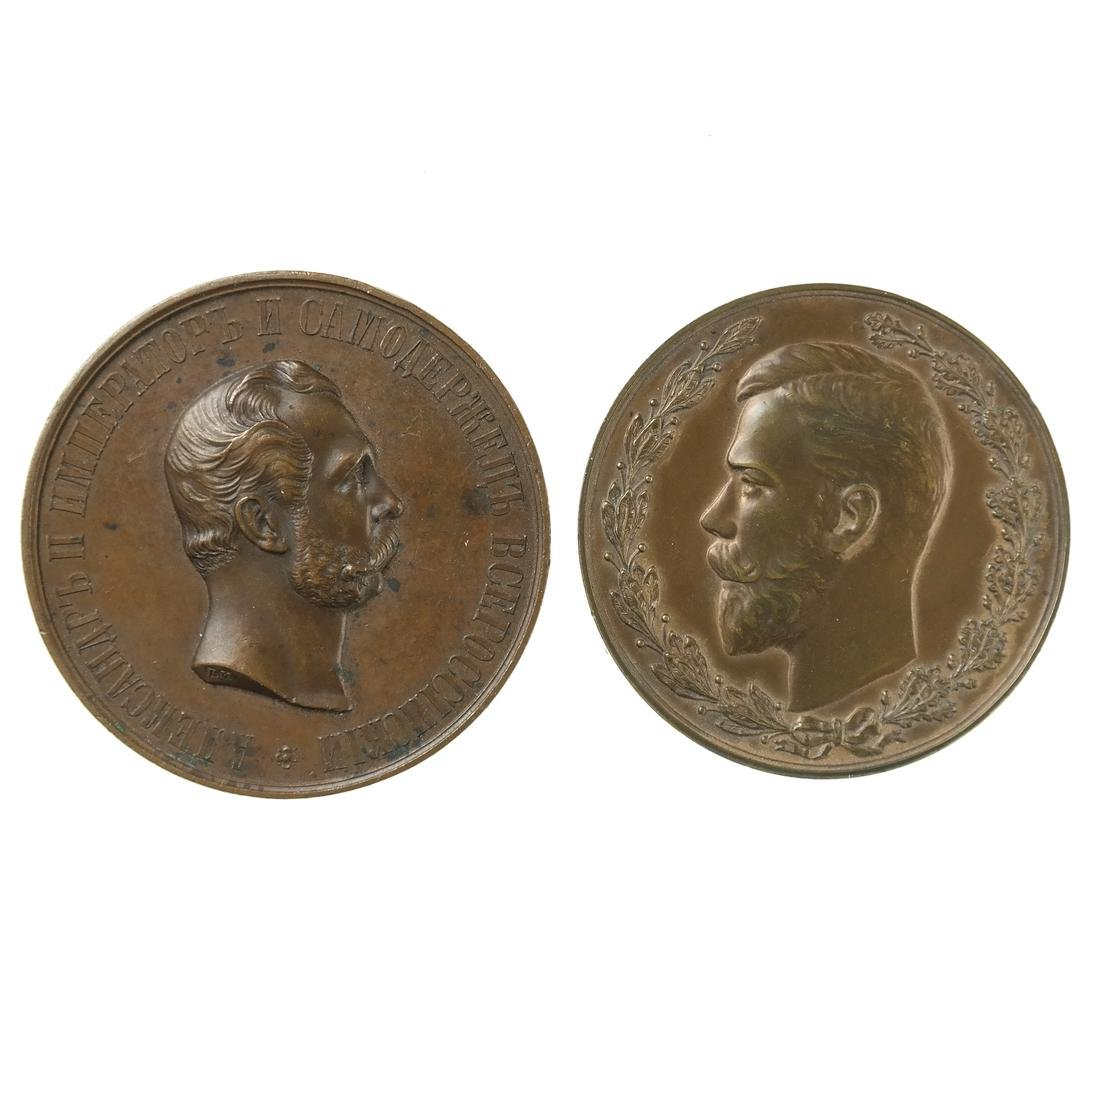 RUSSIA, ALL-RUSSIAN MANUFACTURING PRIZE MEDAL, 1870.